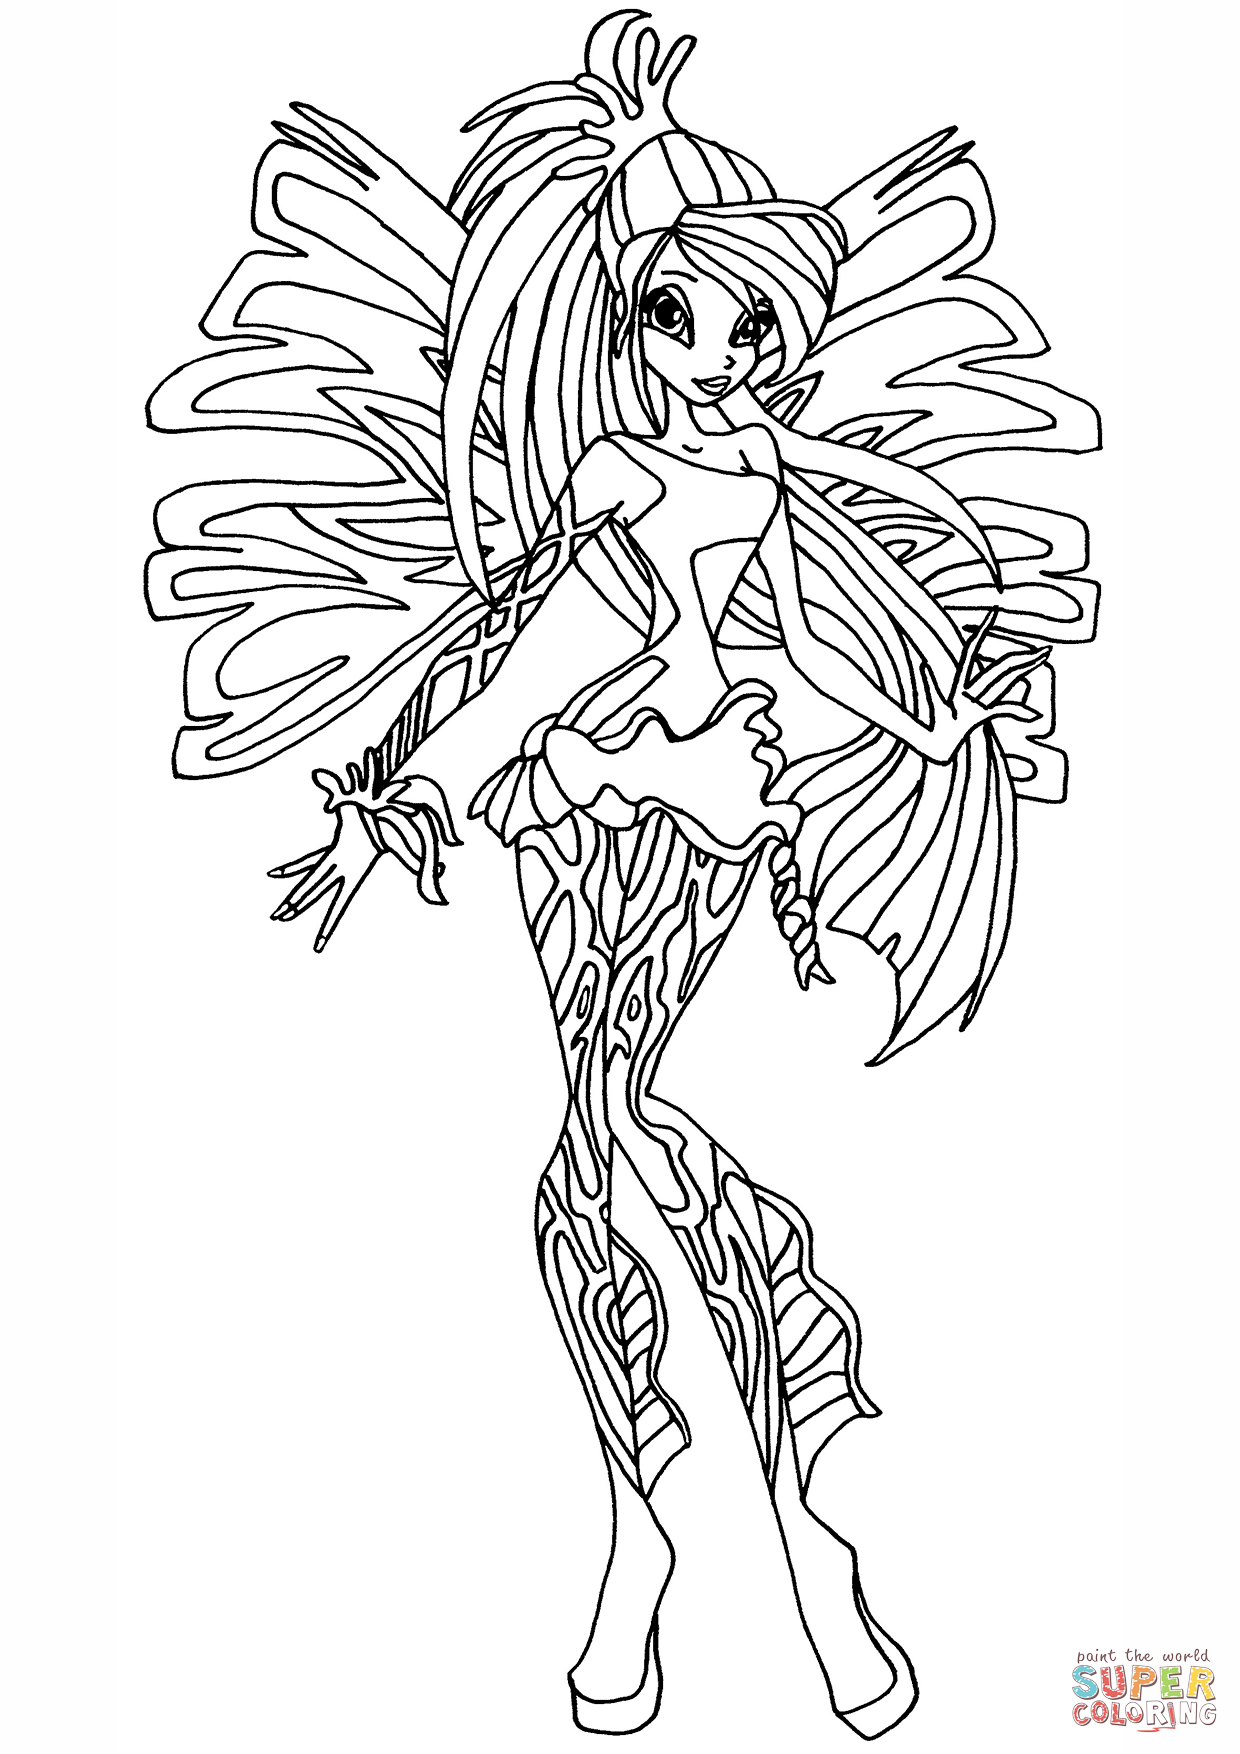 Kleurplaten Van Winx Club Sirenix.Winx Coloring Pages With Winx Club Sirenix Bloom Page Coloring For